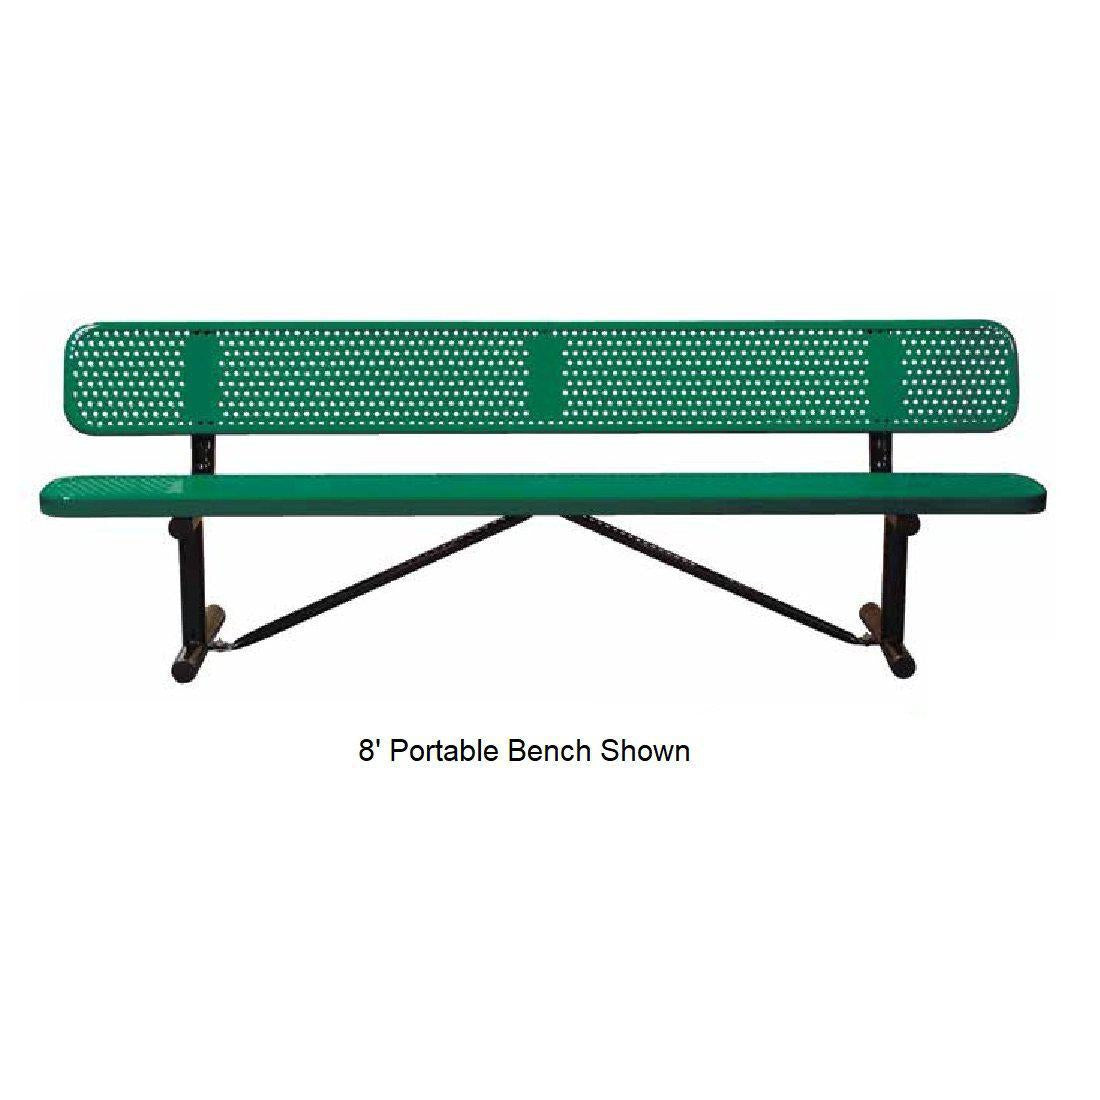 8' Standard Perforated Bench With Back, Surface Mount